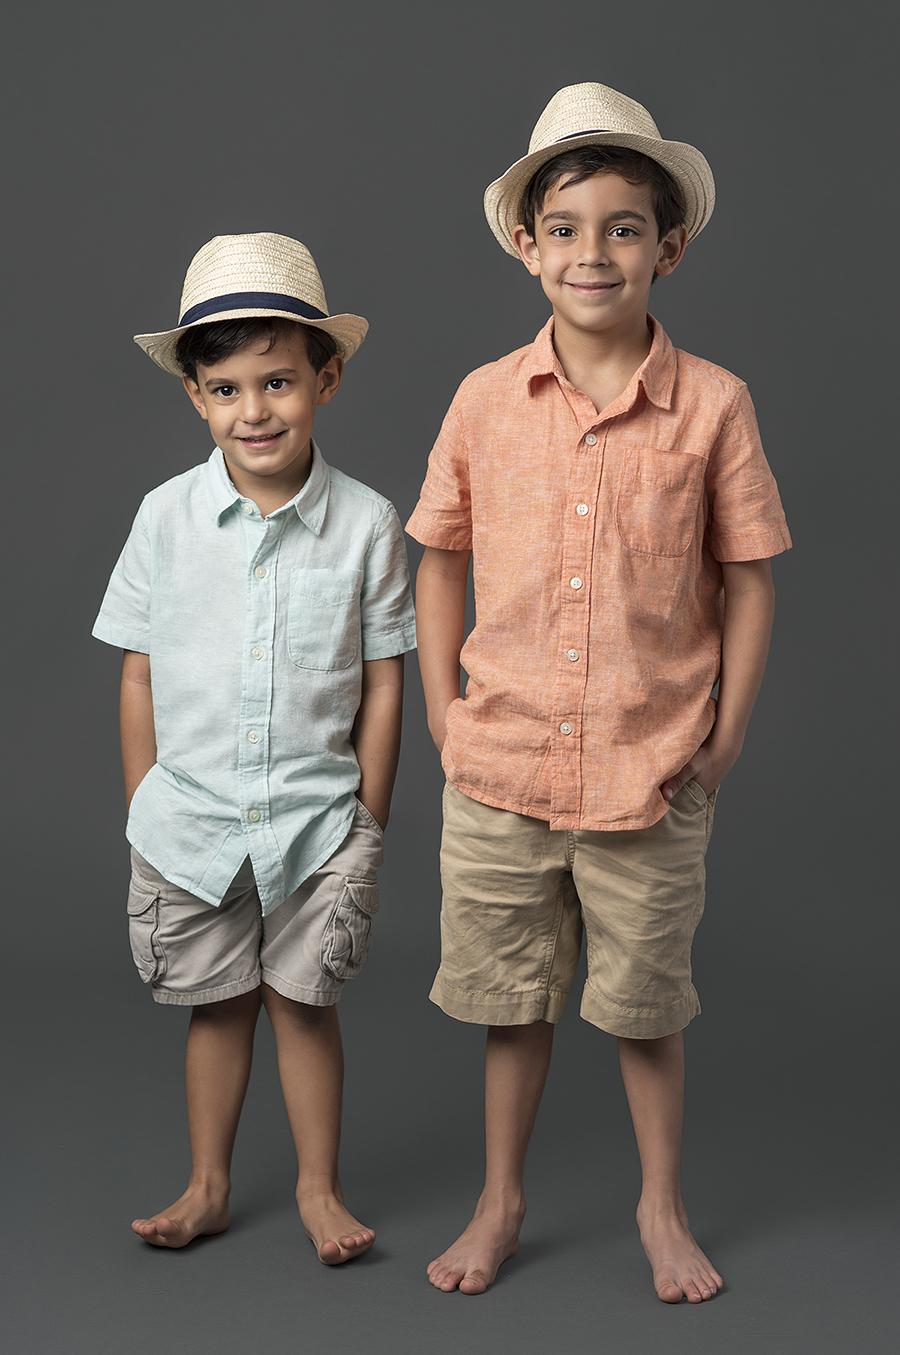 Portrait of two young boys wearing fadoras